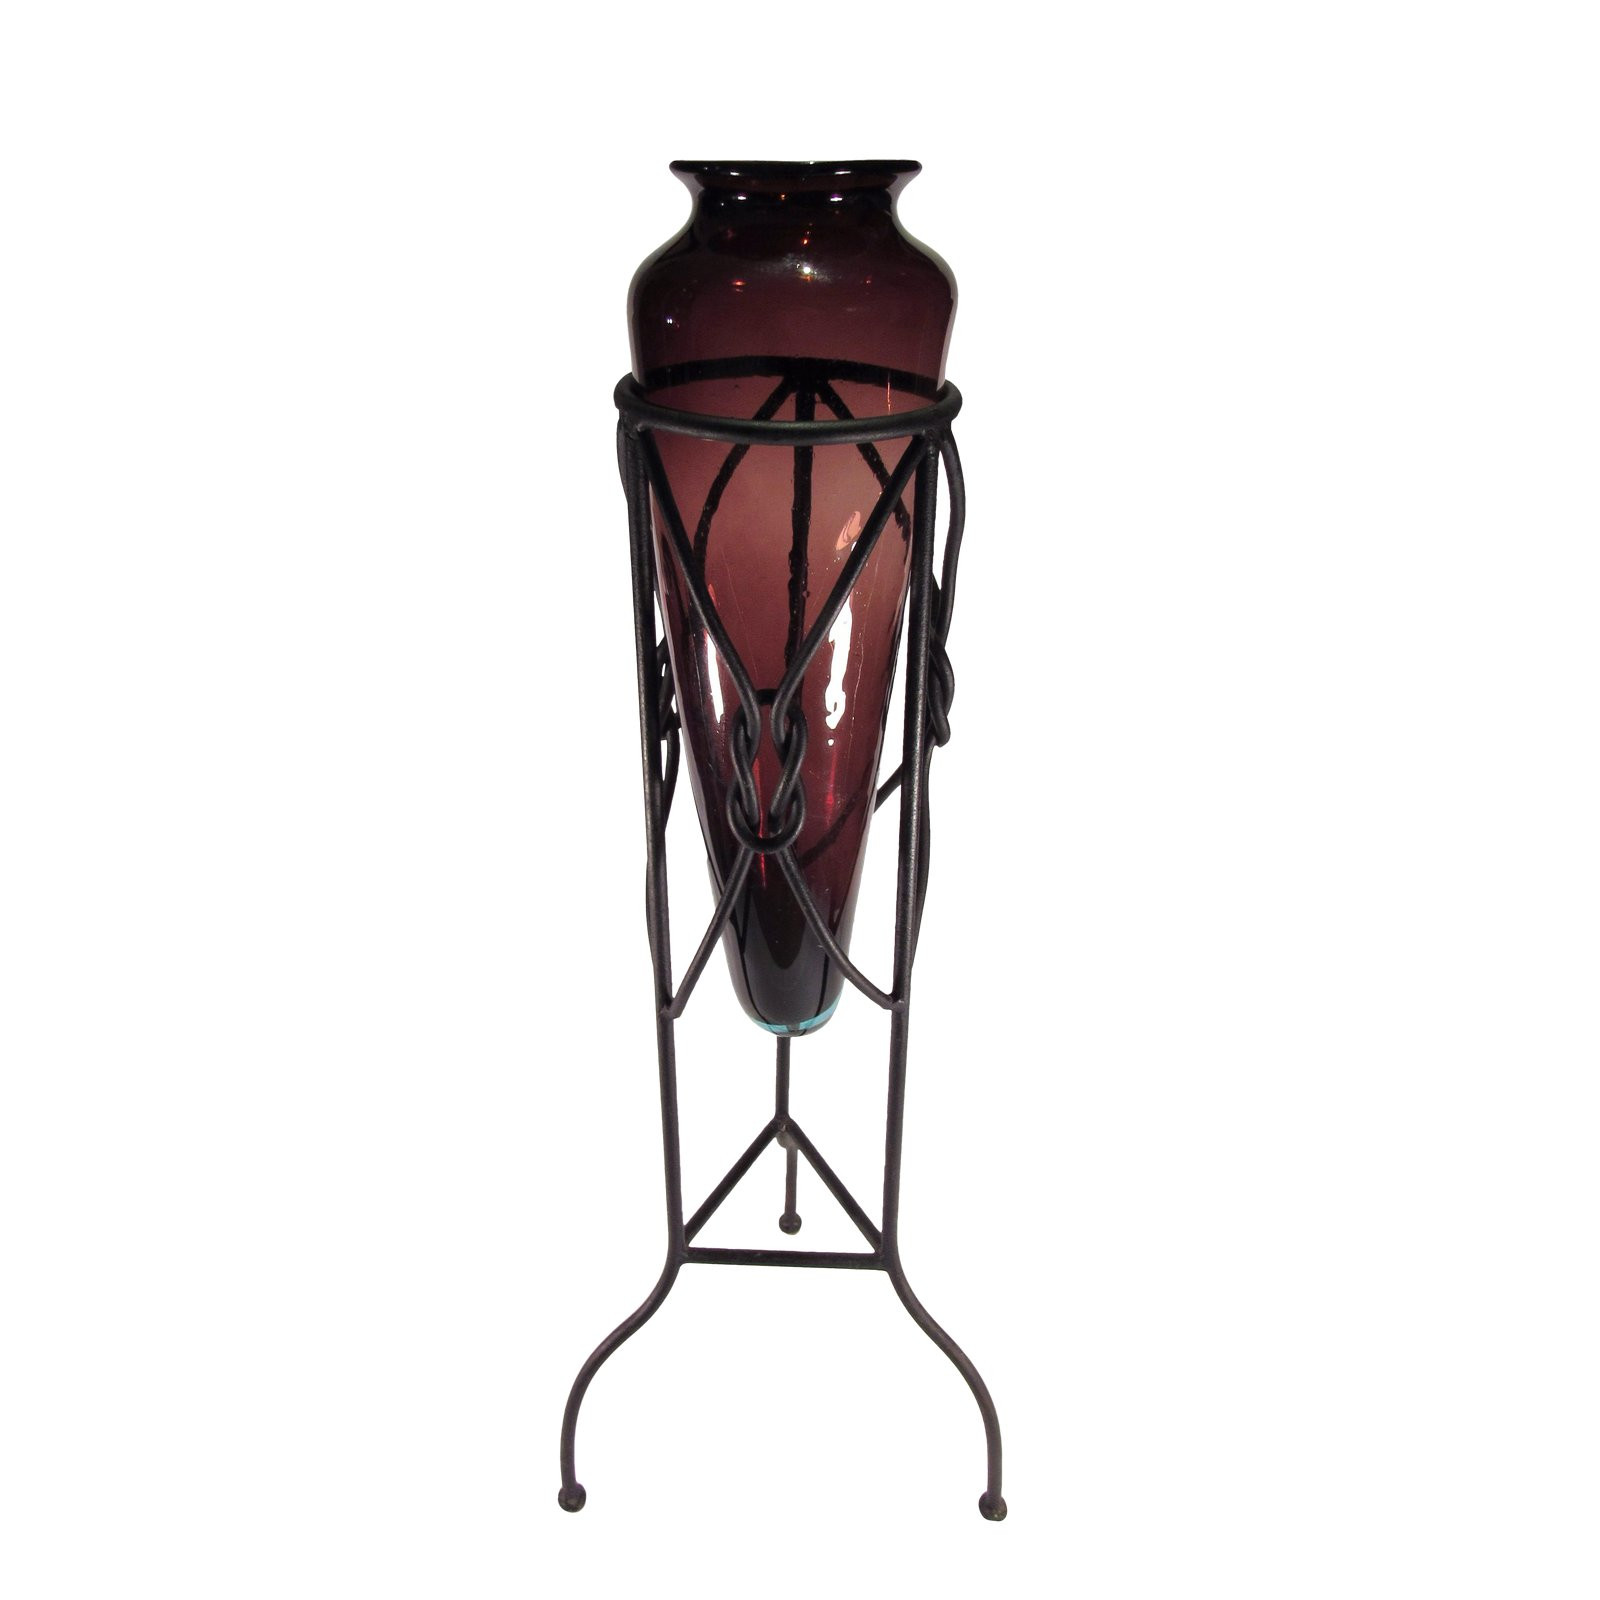 vintage lead crystal vase of large amphora style glass vase in iron tripod stand chairish with regard to large amphora style glass vase in iron tripod stand 8677